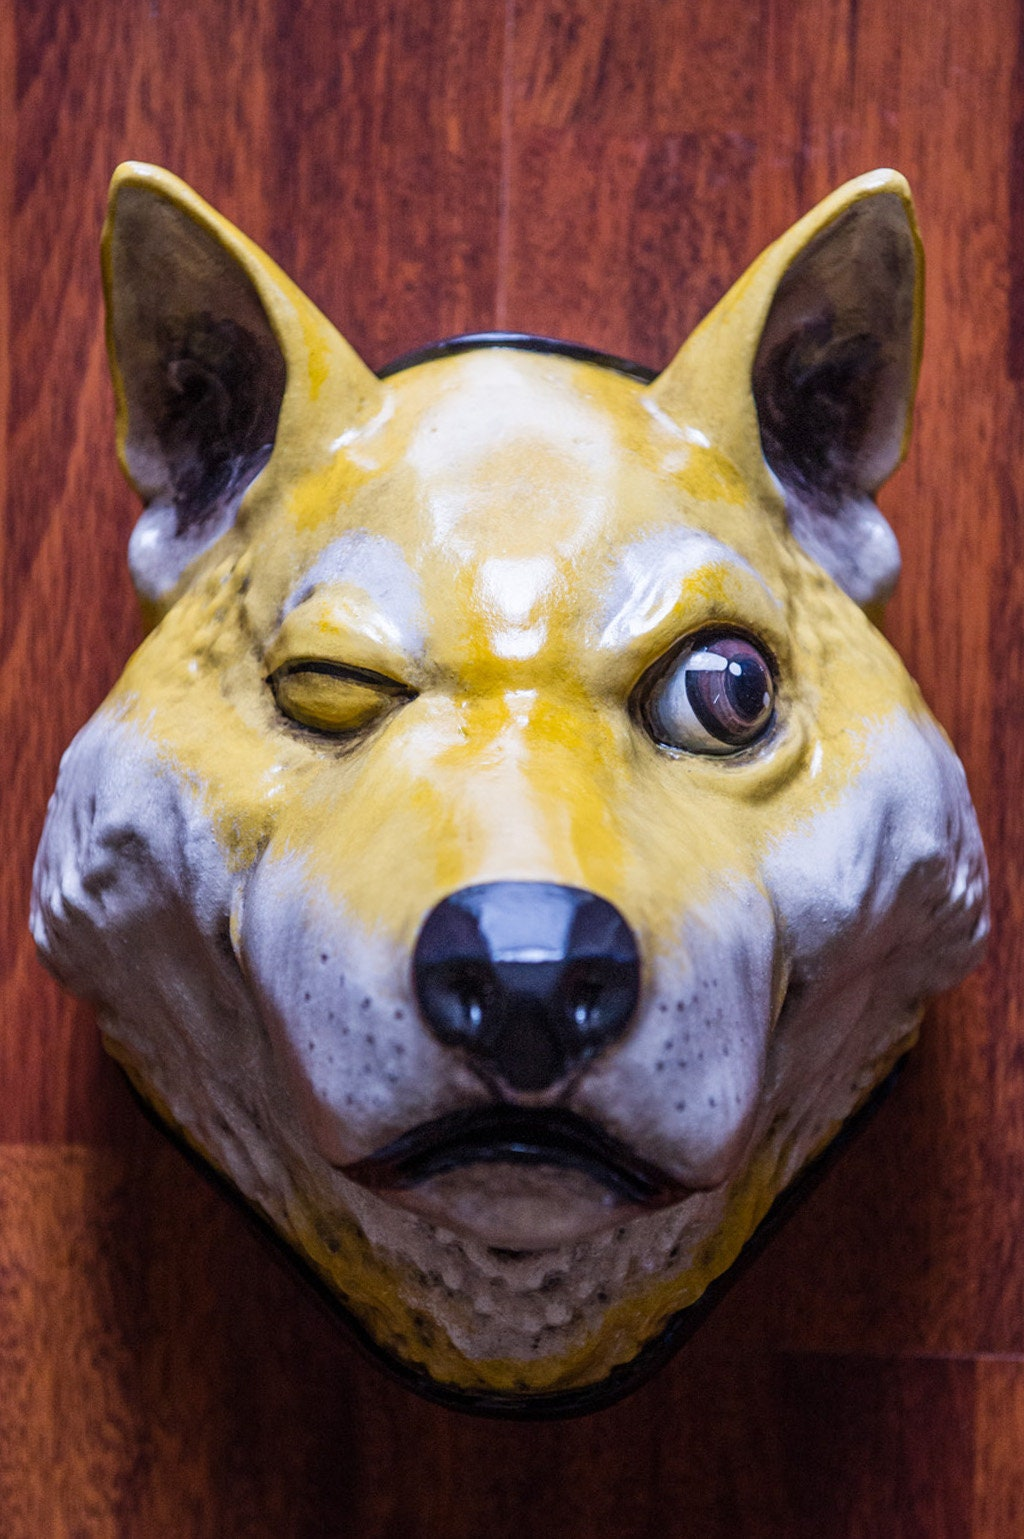 c9c6acc50669 Inspired Doge meme mask Hotline Miami Payday 2 the heist mask